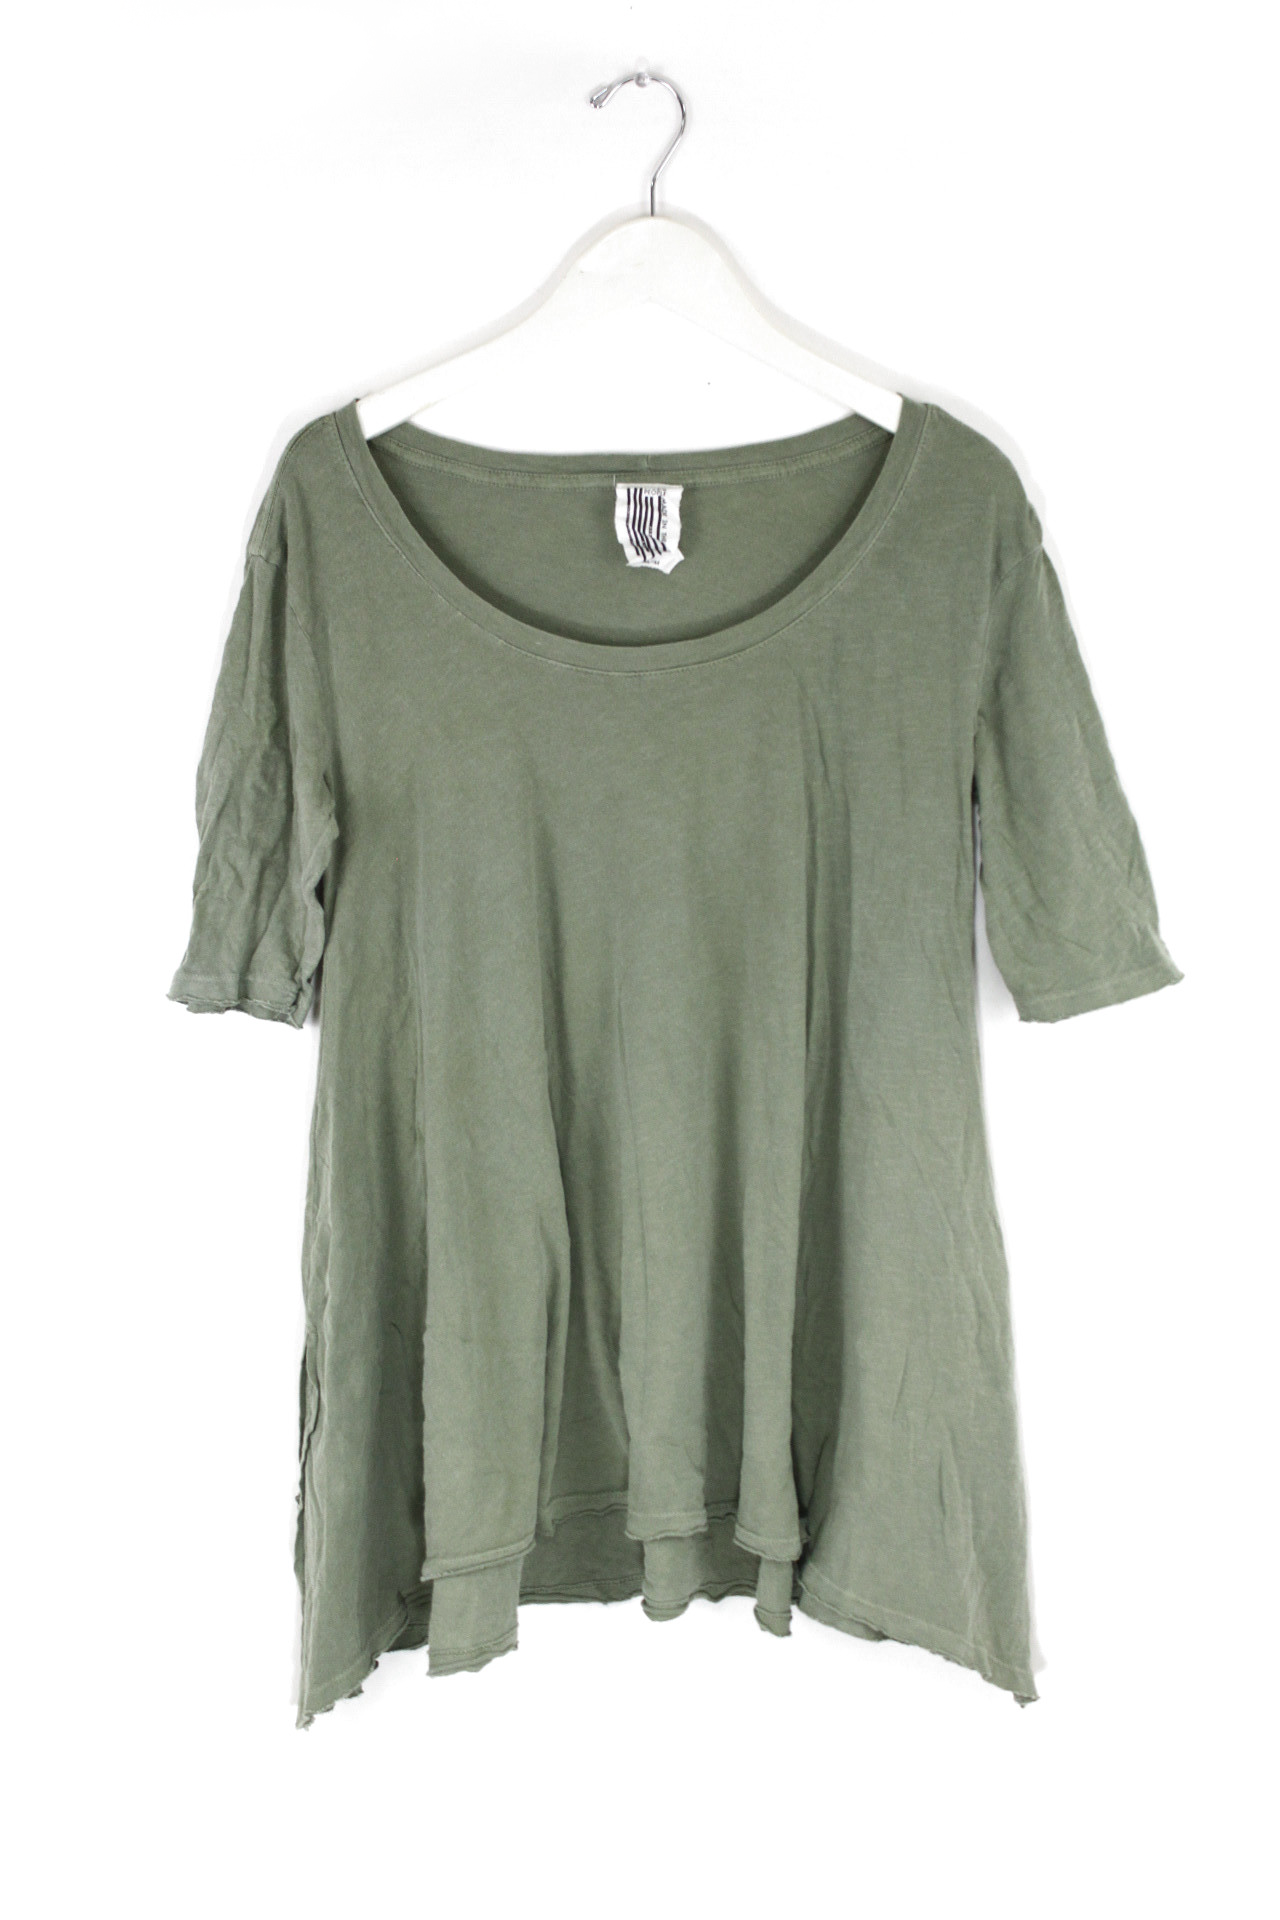 New Free People Melrose Swing Tee 100/% Cotton Hi-Lo Trapeze Top Womens Xs-L $68